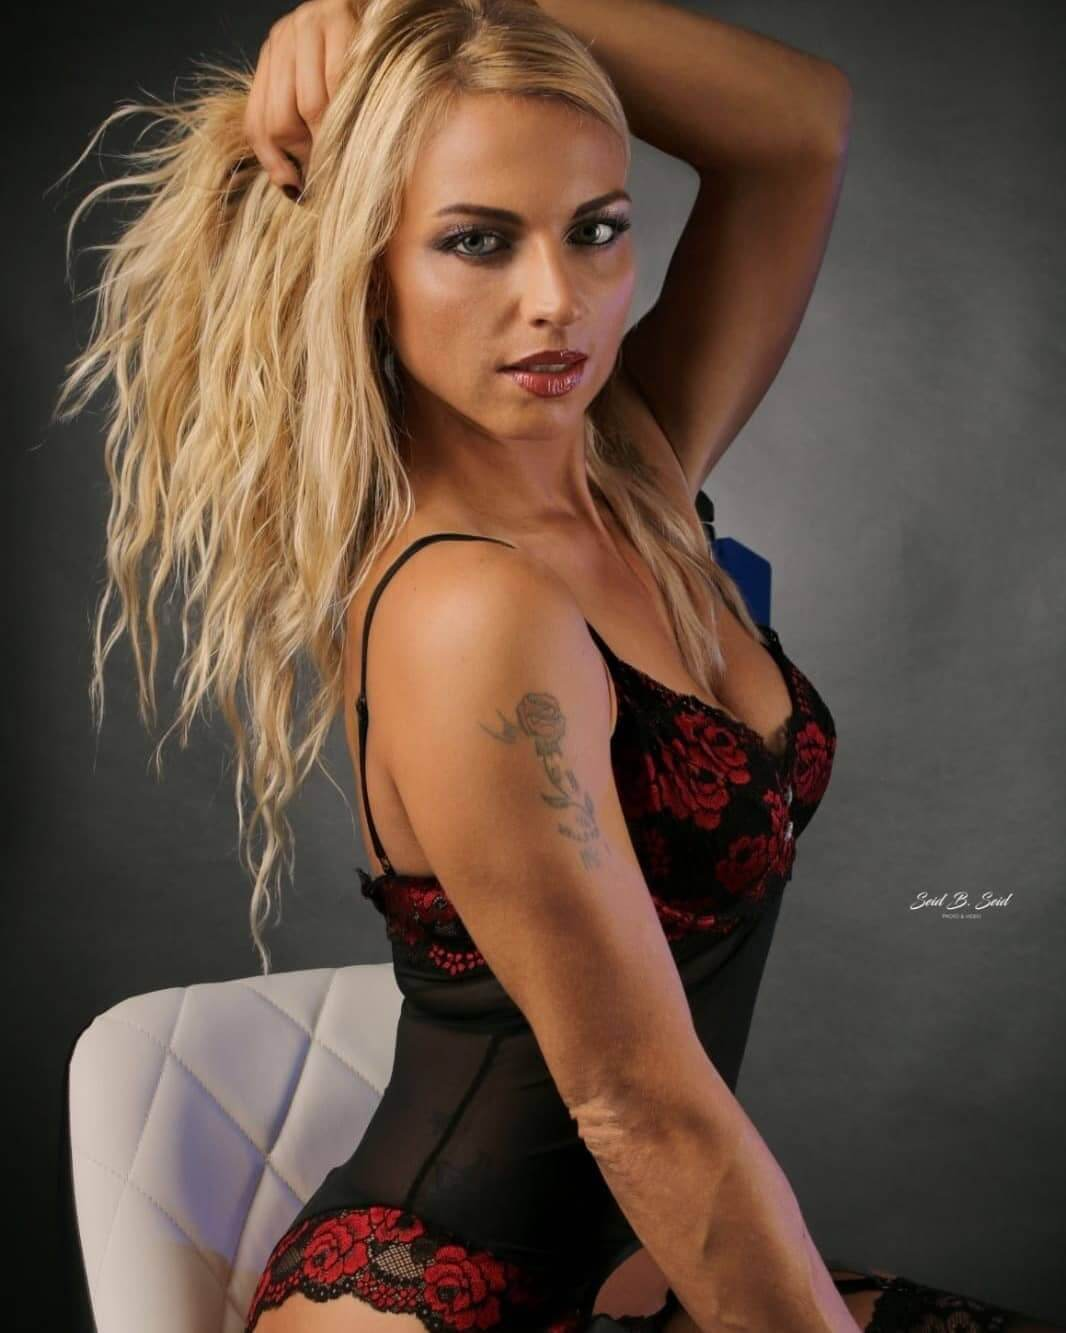 Hot inked blonde Dutch model wearing black and red lingerie in sexy poses for a boudoir photo shoot